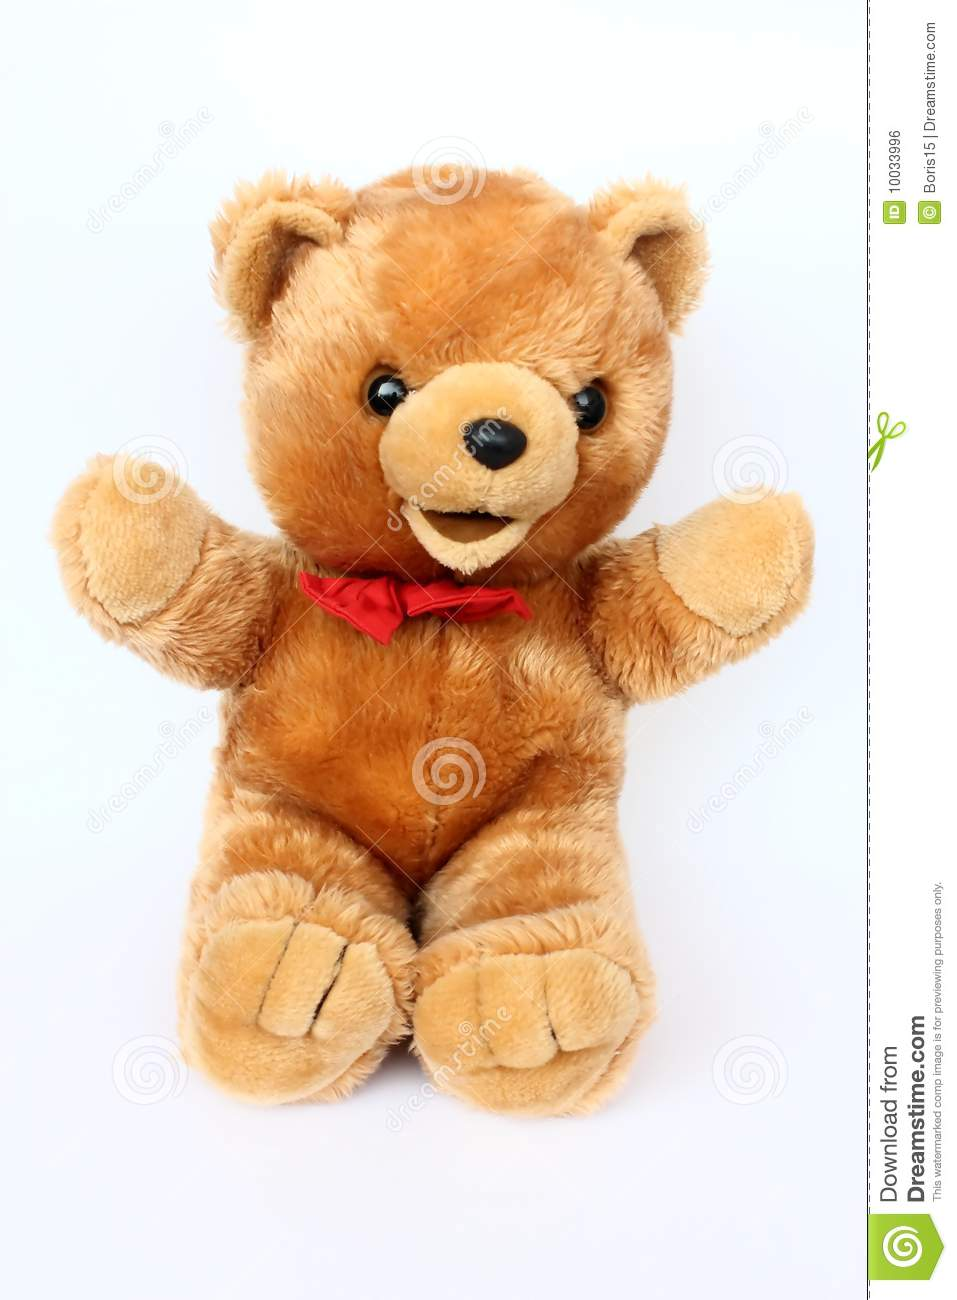 Beautiful Teddy Bear Royalty Free Stock Image Image